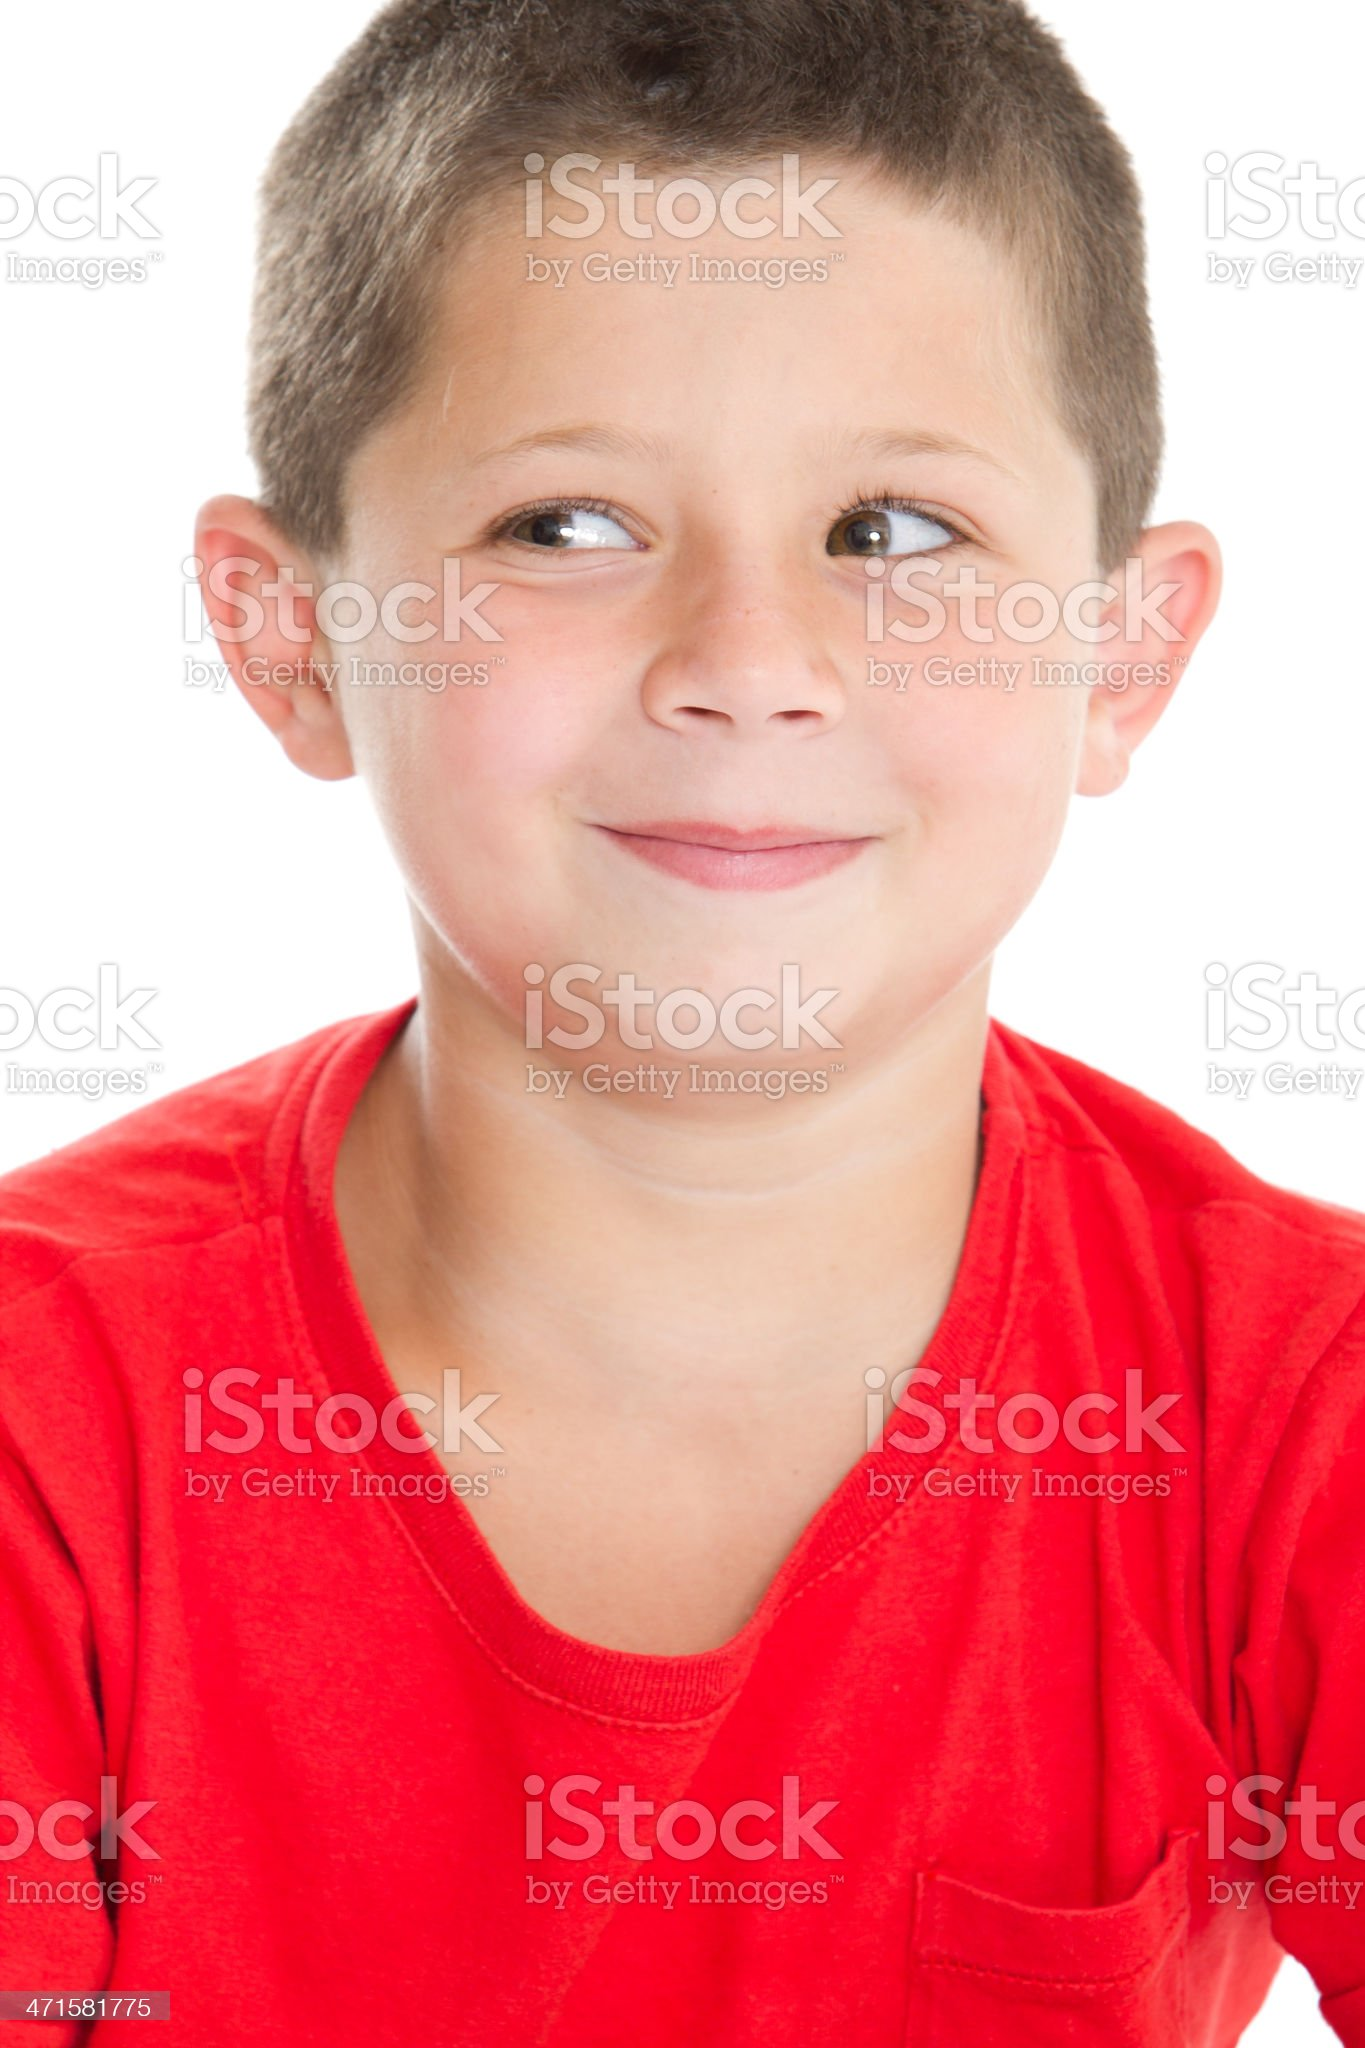 Cute boy's portrait royalty-free stock photo